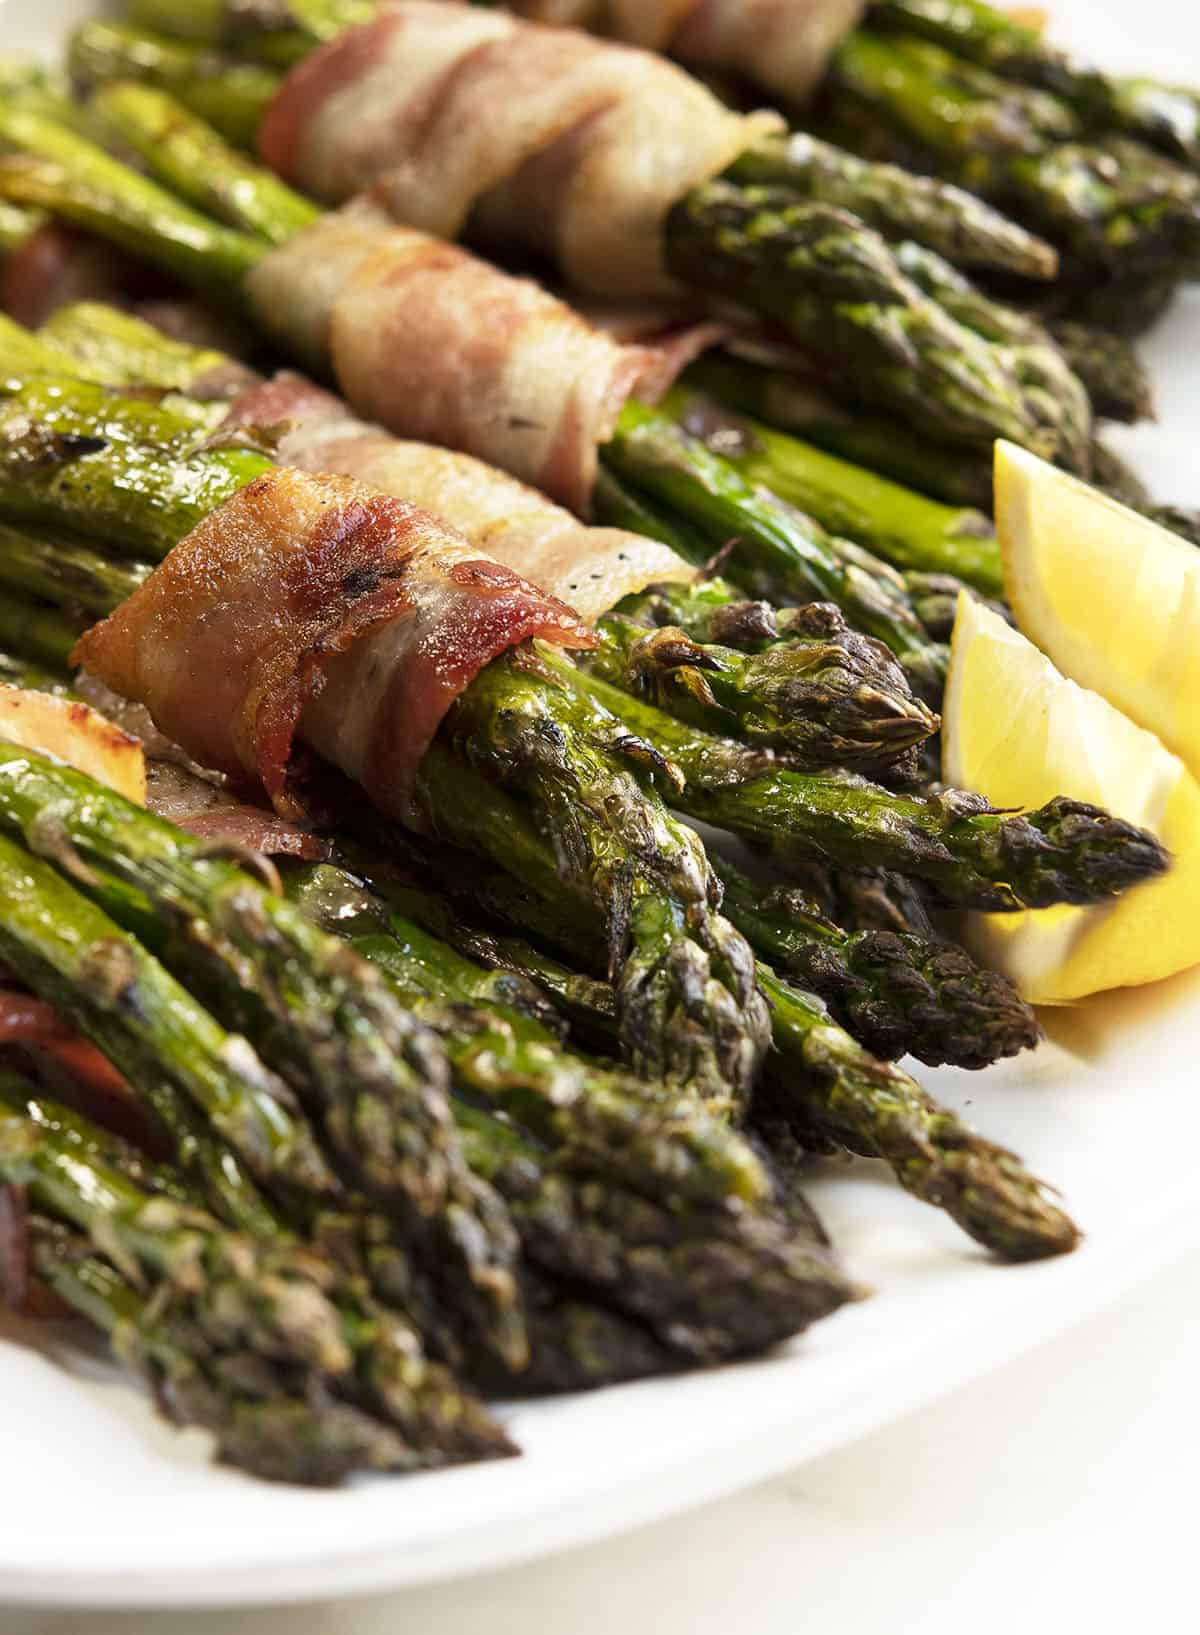 Grilled Bacon Wrapped Asparagus close up shot